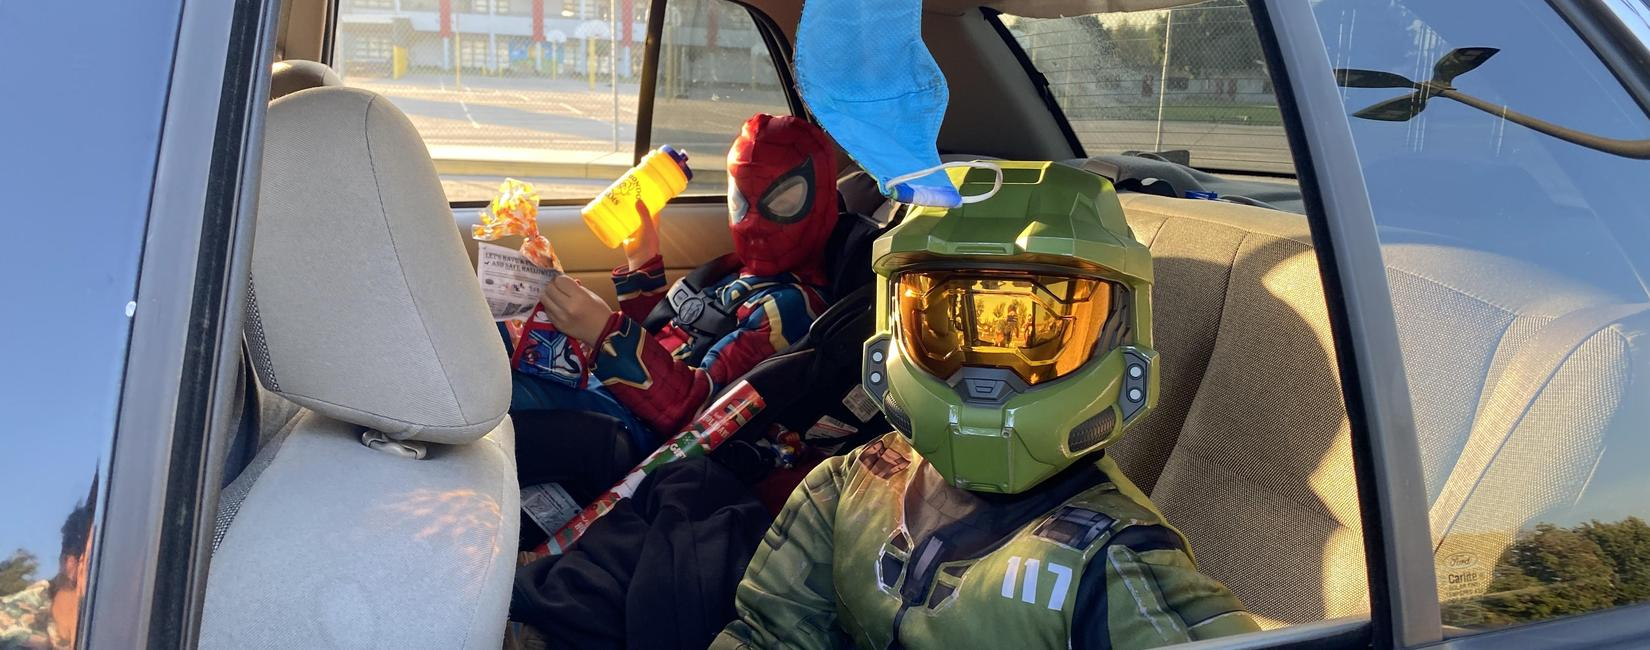 Students at Rio Hondo School dressed as Master Chief and Spider-Man